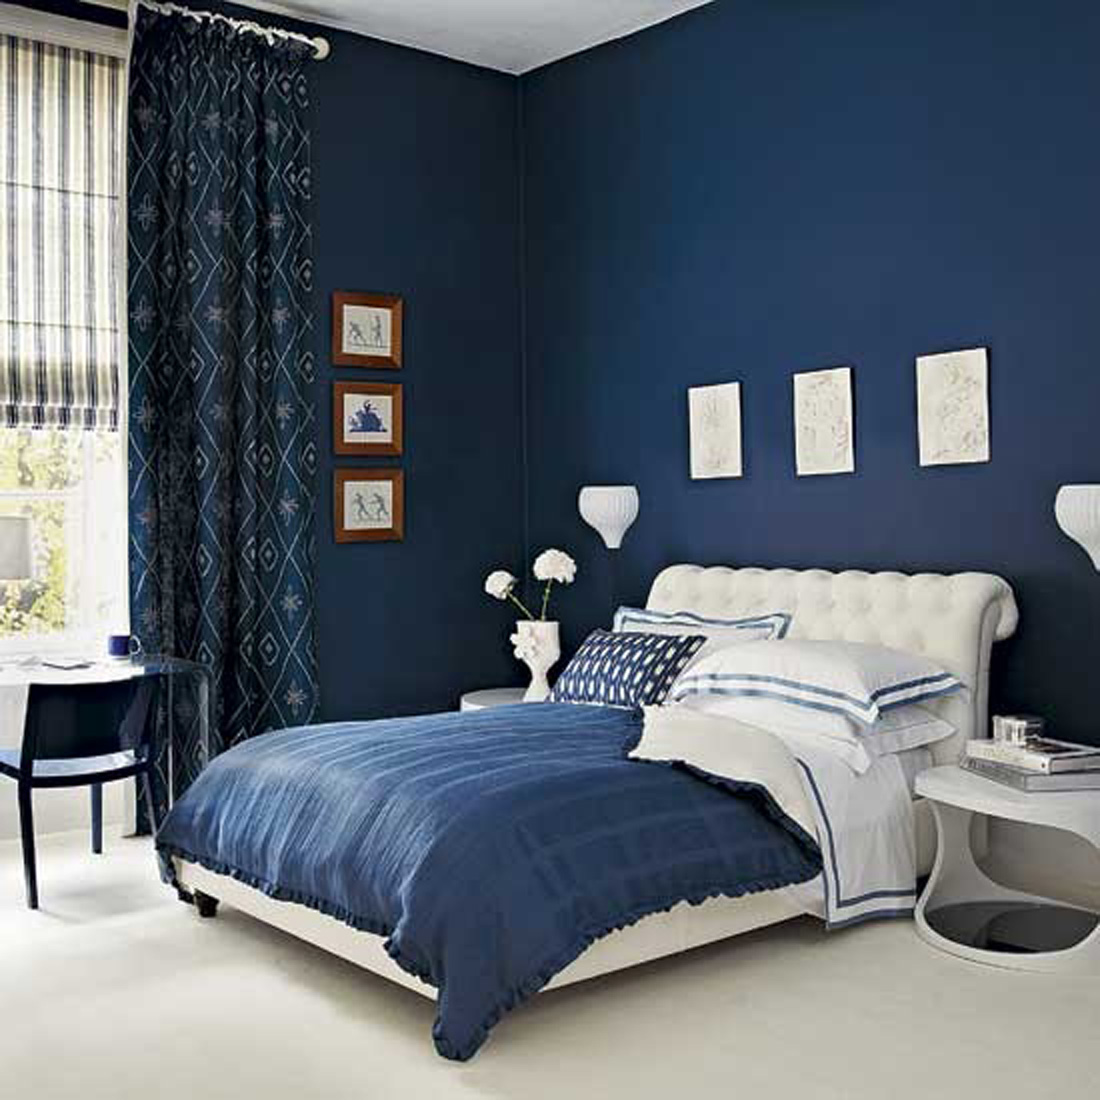 Bedroom design ideas for women blue - Blue Wall Paint For Modern Bedroom